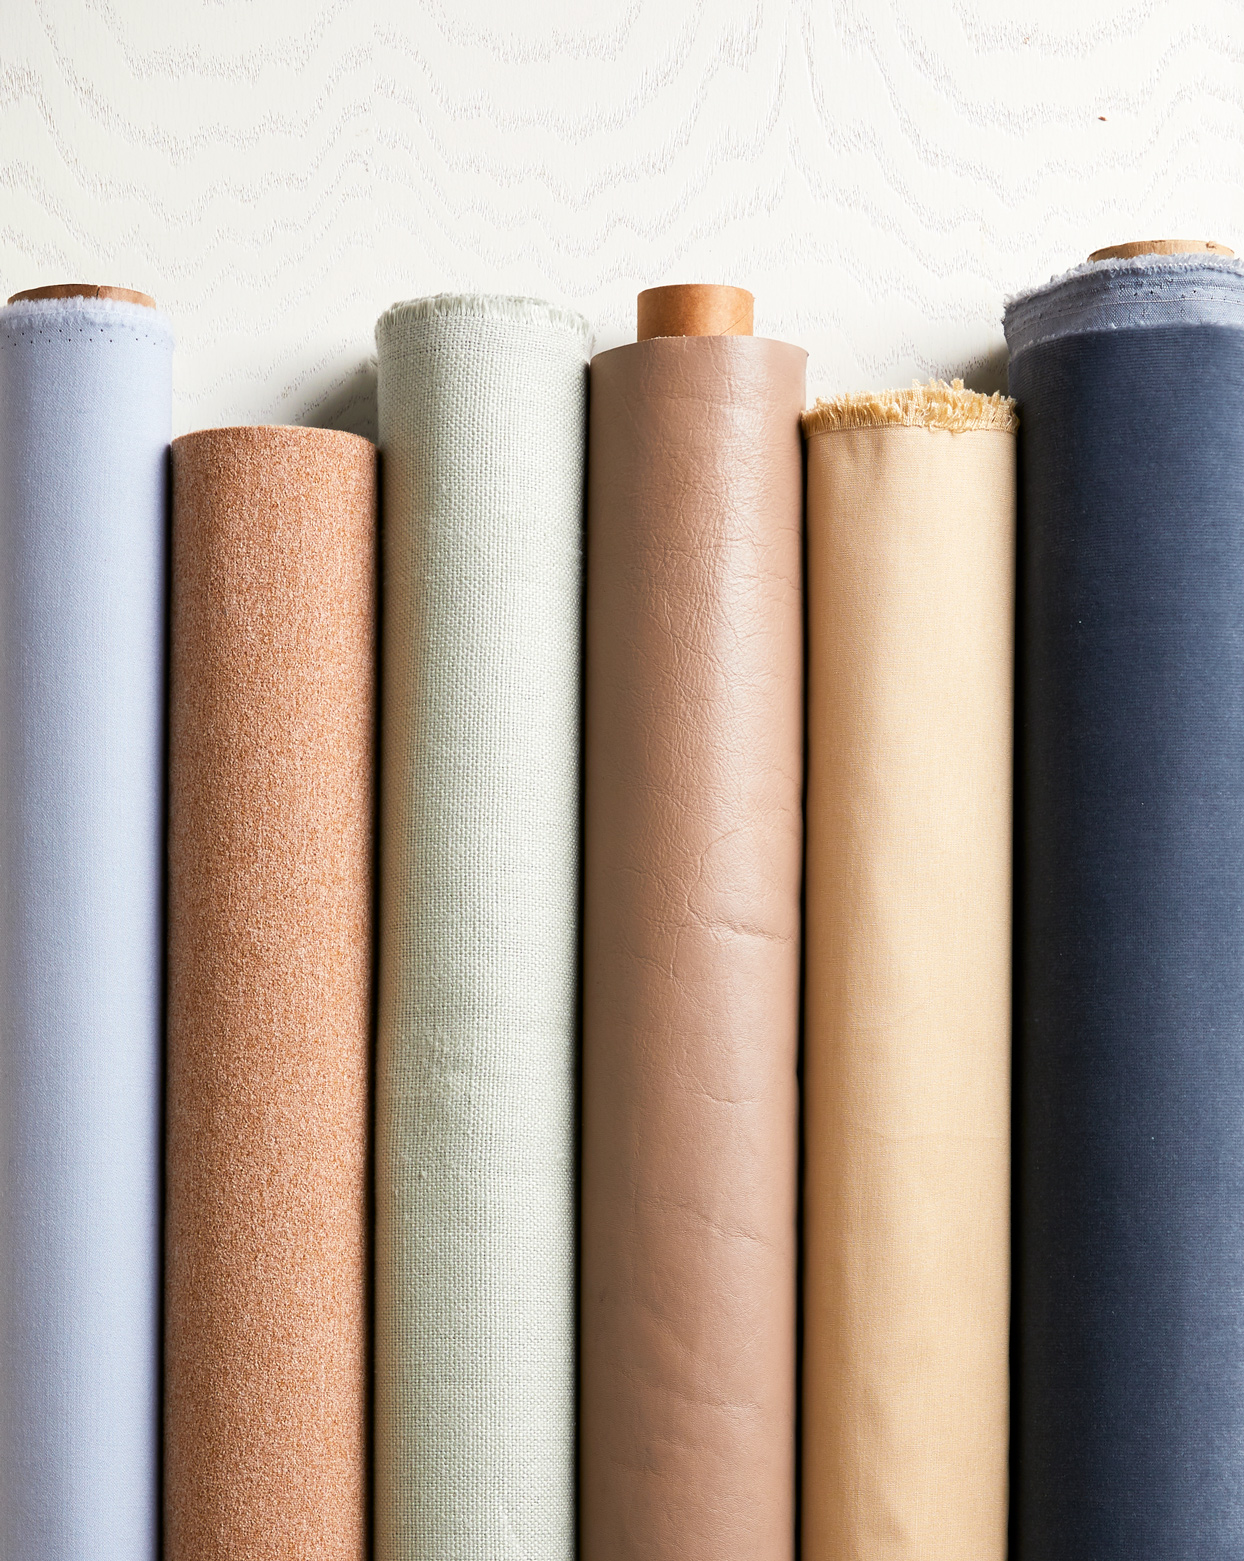 various colored types of fabric rolls